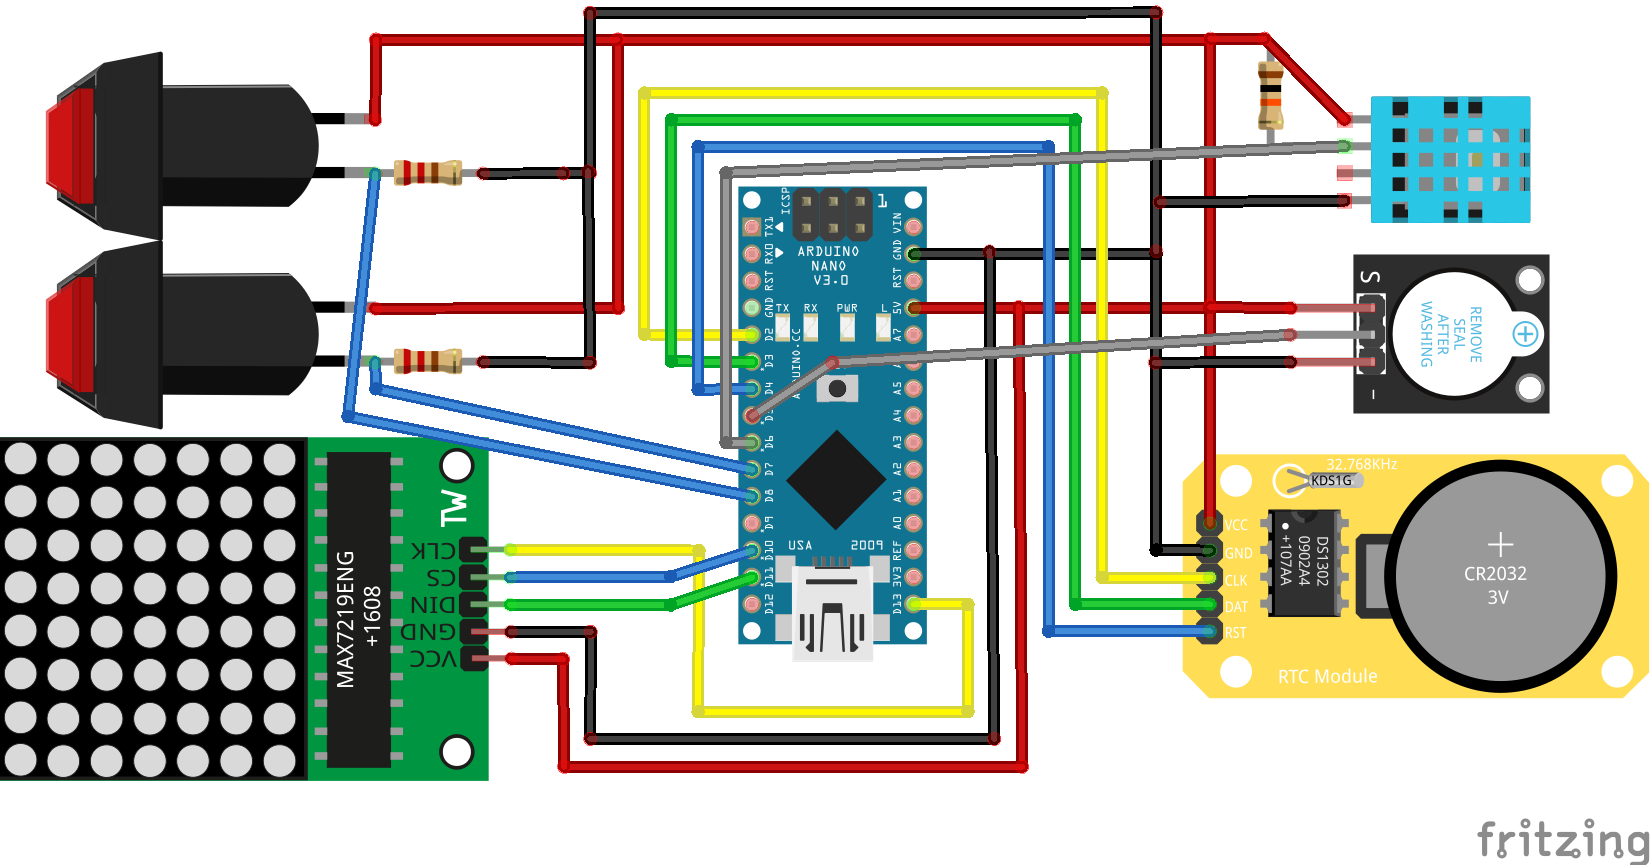 Digital clock Circuit diagram with Arduino nano, RTC, DHT, MAX7219, Buzzer